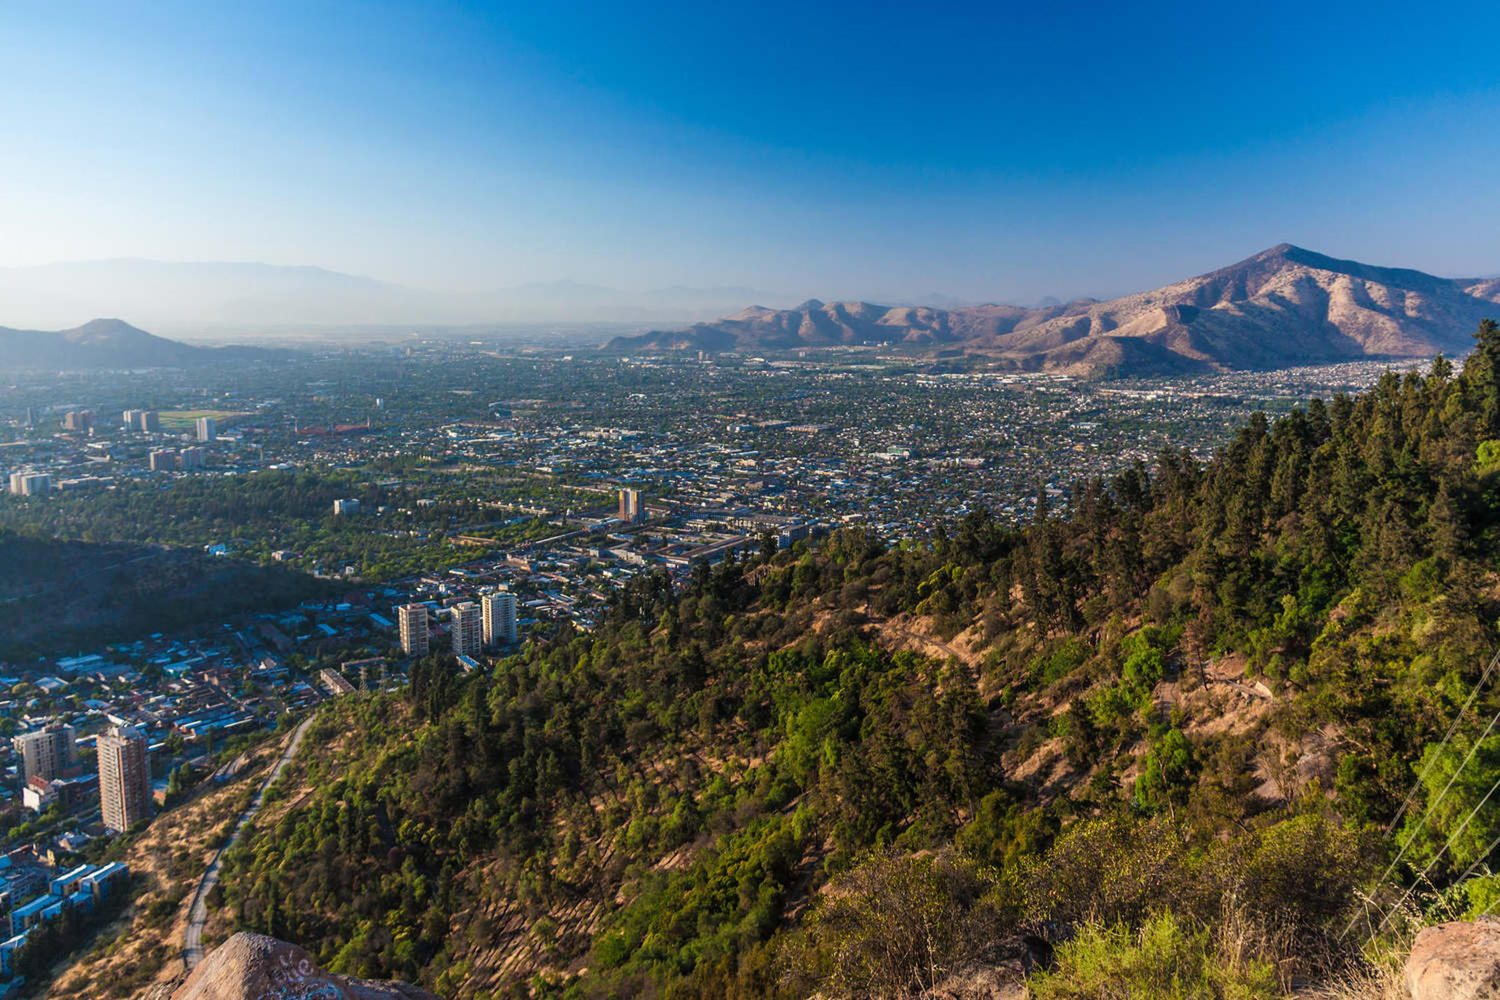 Aerial view of Santiago from Cerro Santa Lucia